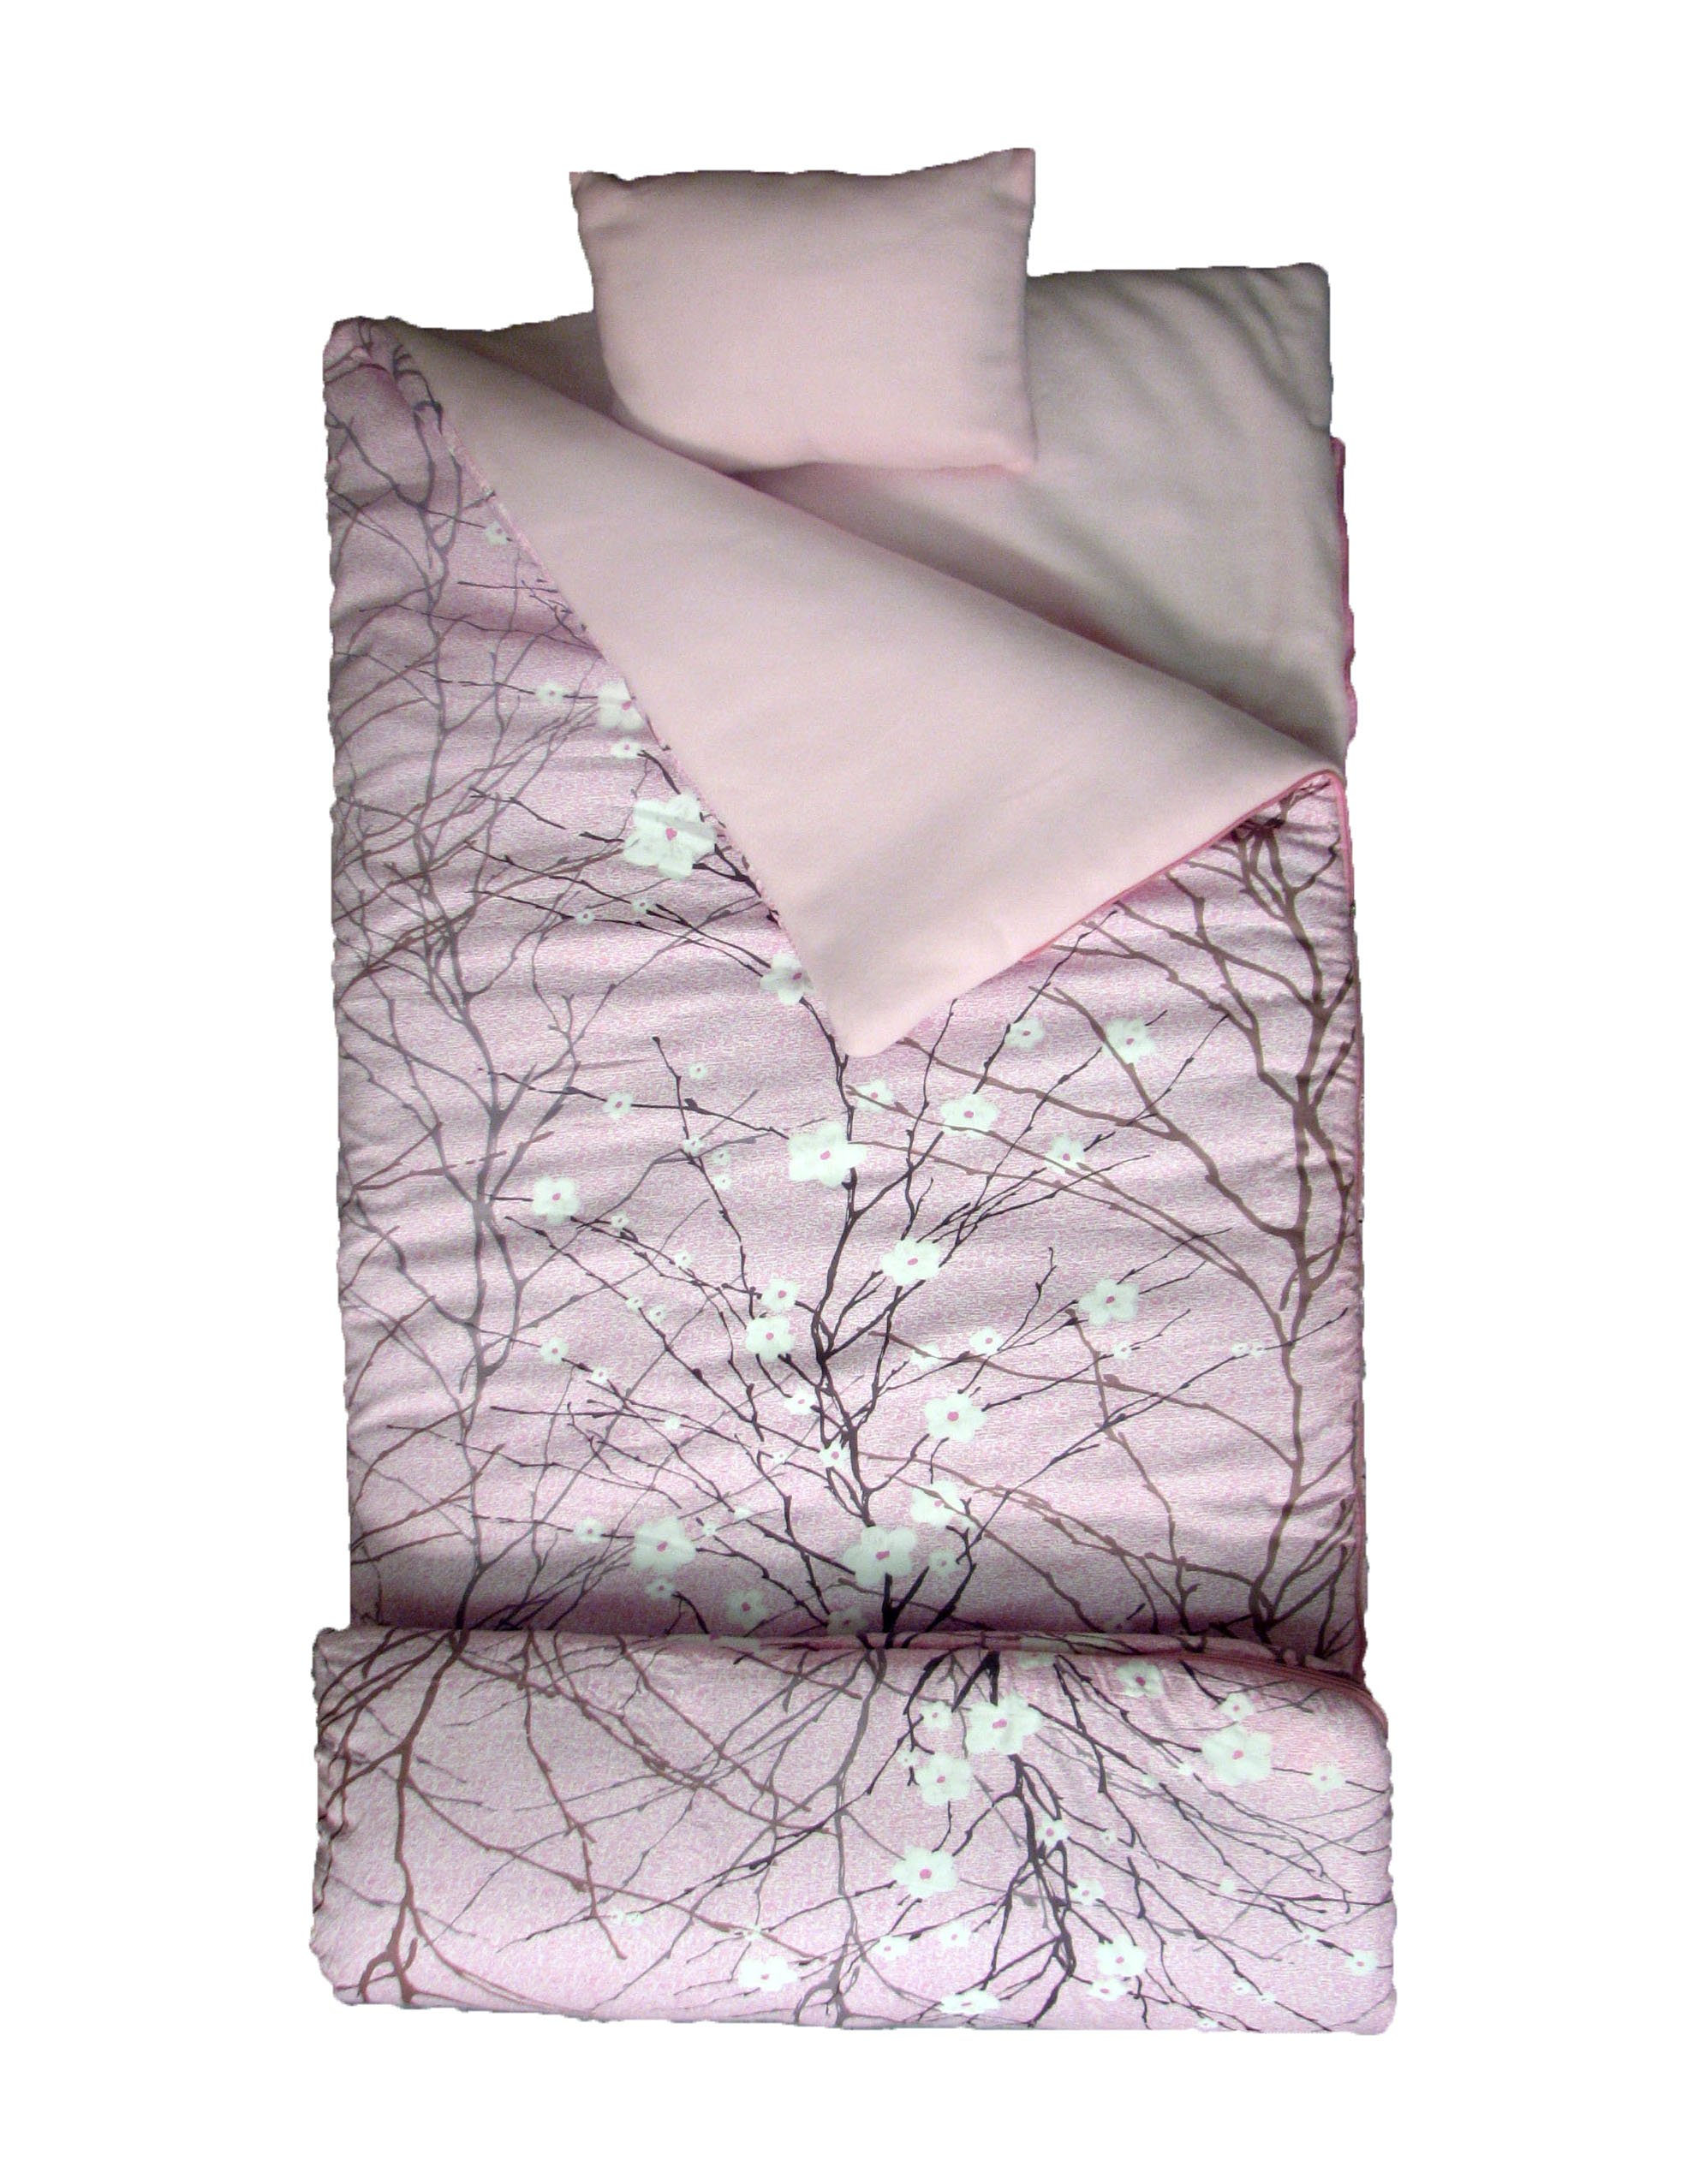 SoHo kids Cherry Blossom children sleeping slumber bag with pillow and carrying case lightweight foldable for sleep over